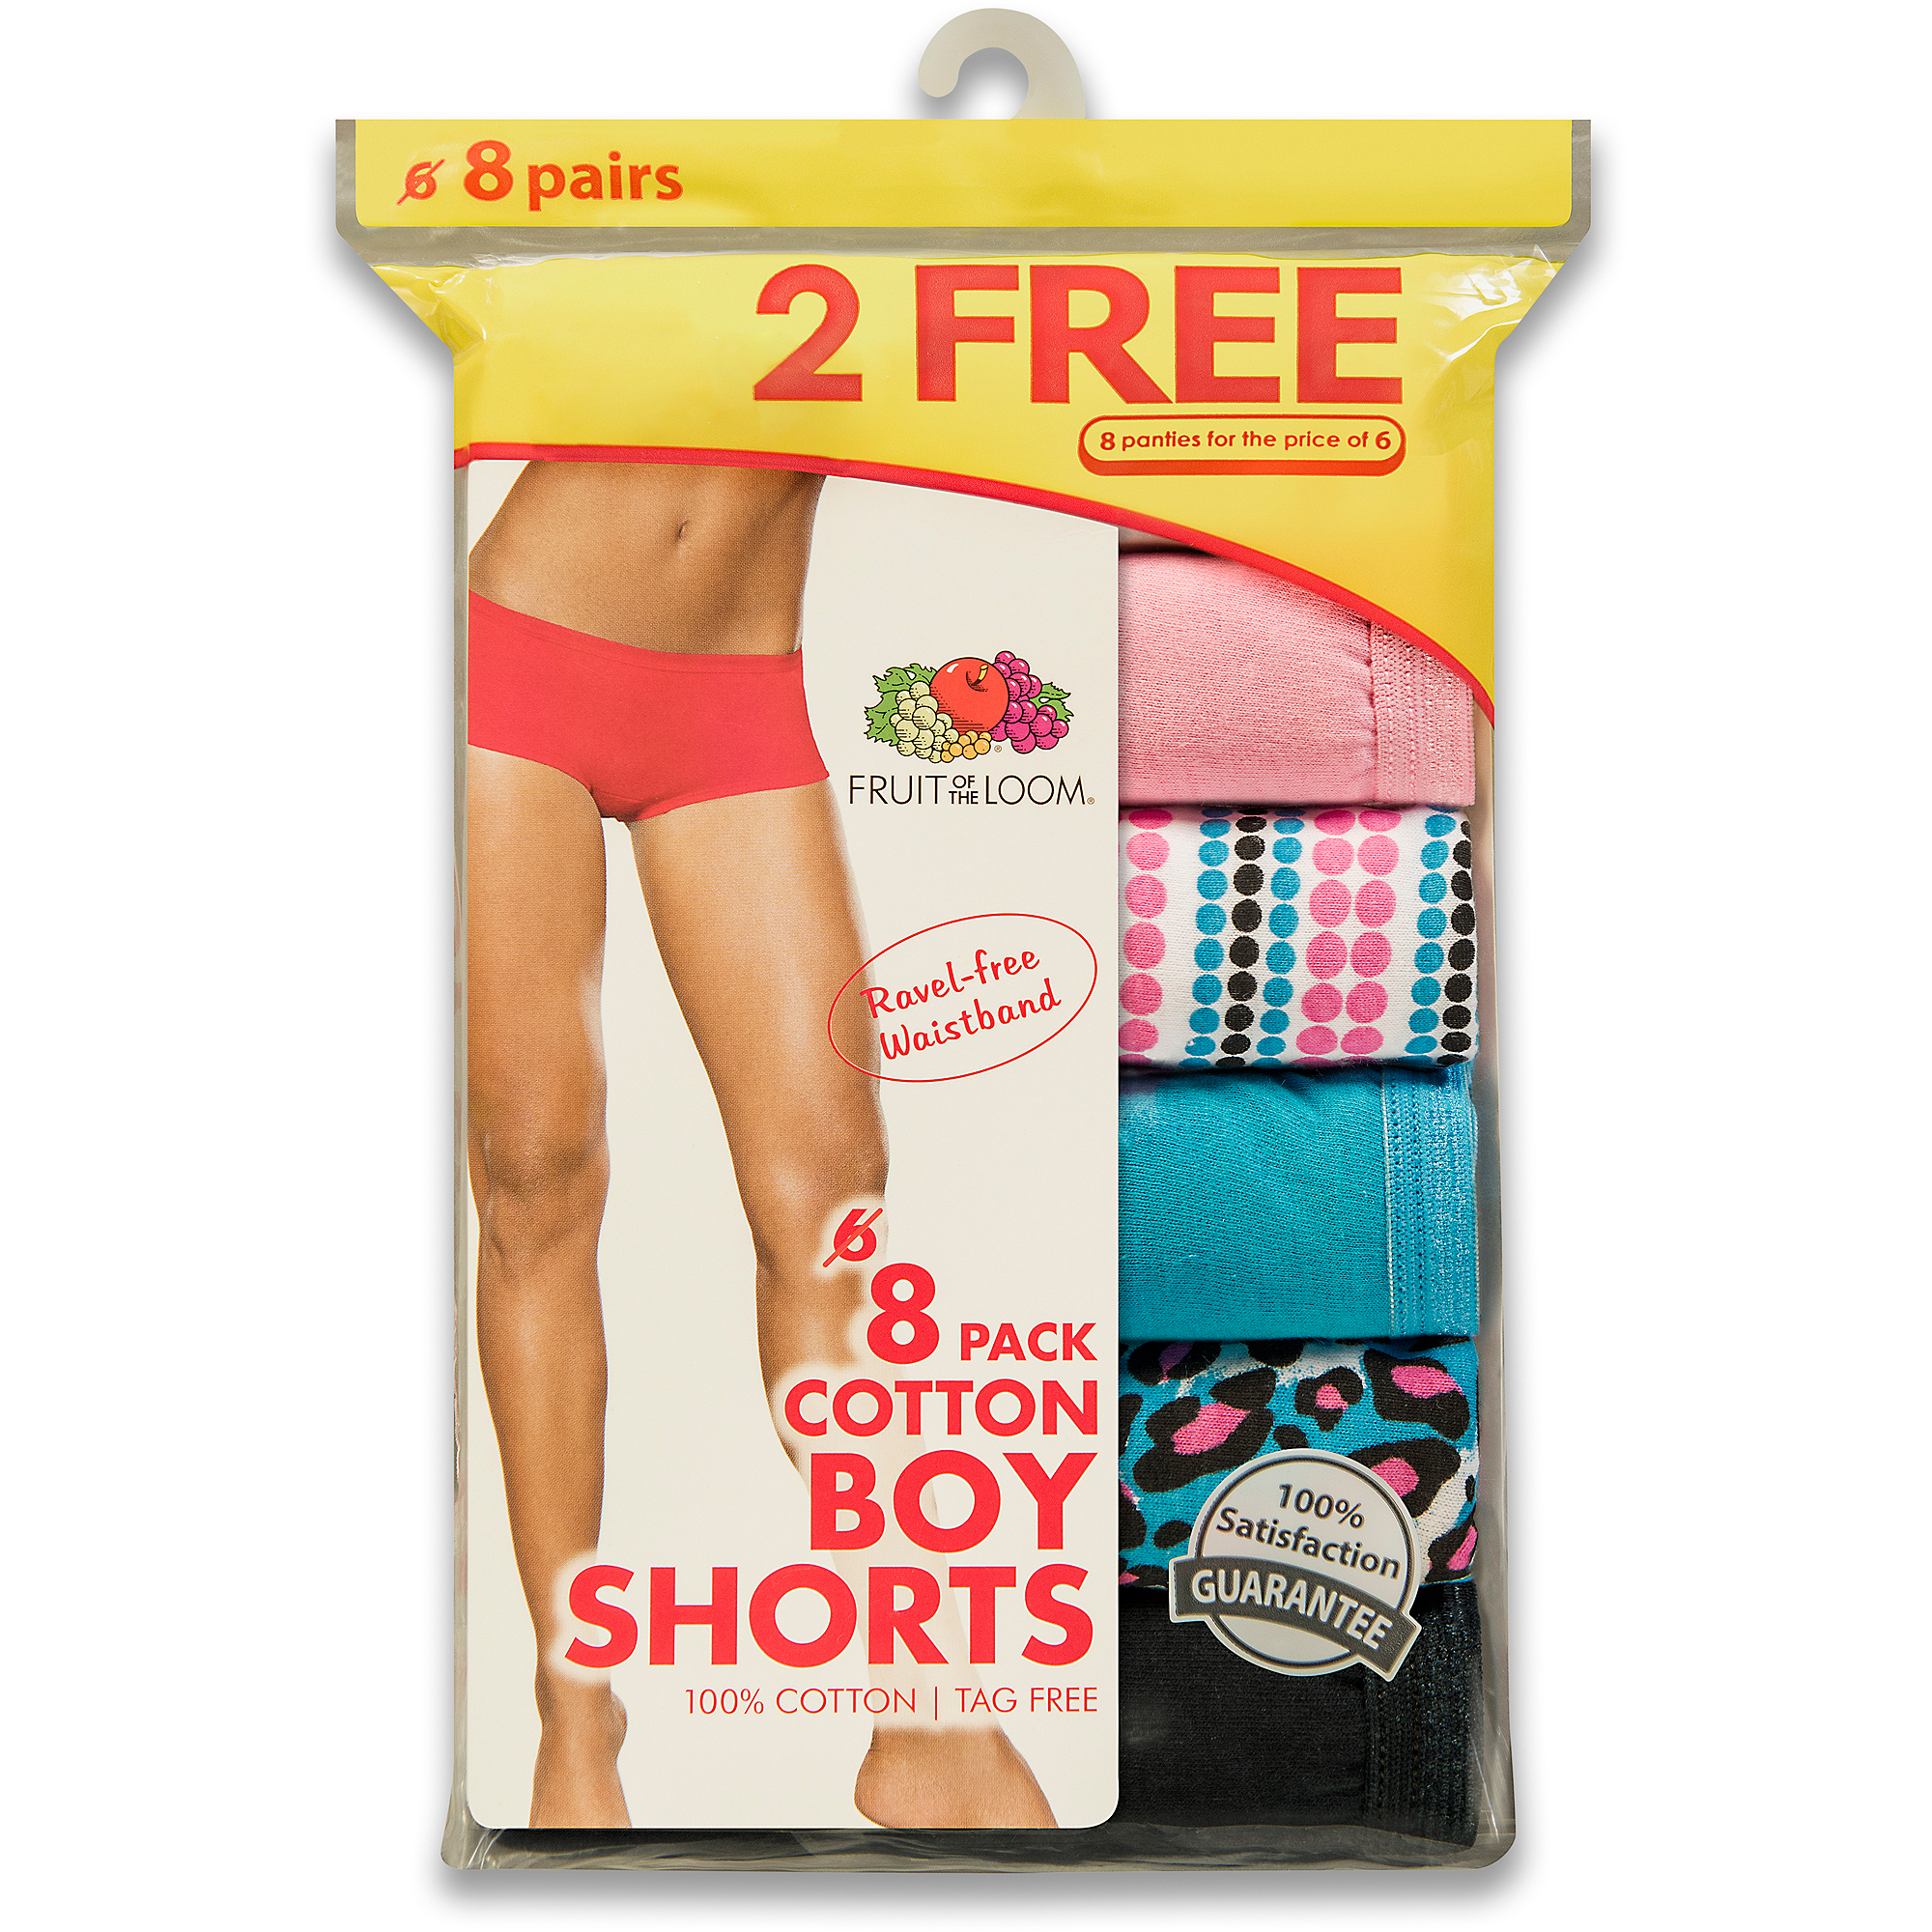 Fruit of the Loom Ladies' Cotton Boy Shorts 6+2 Bonus Pack